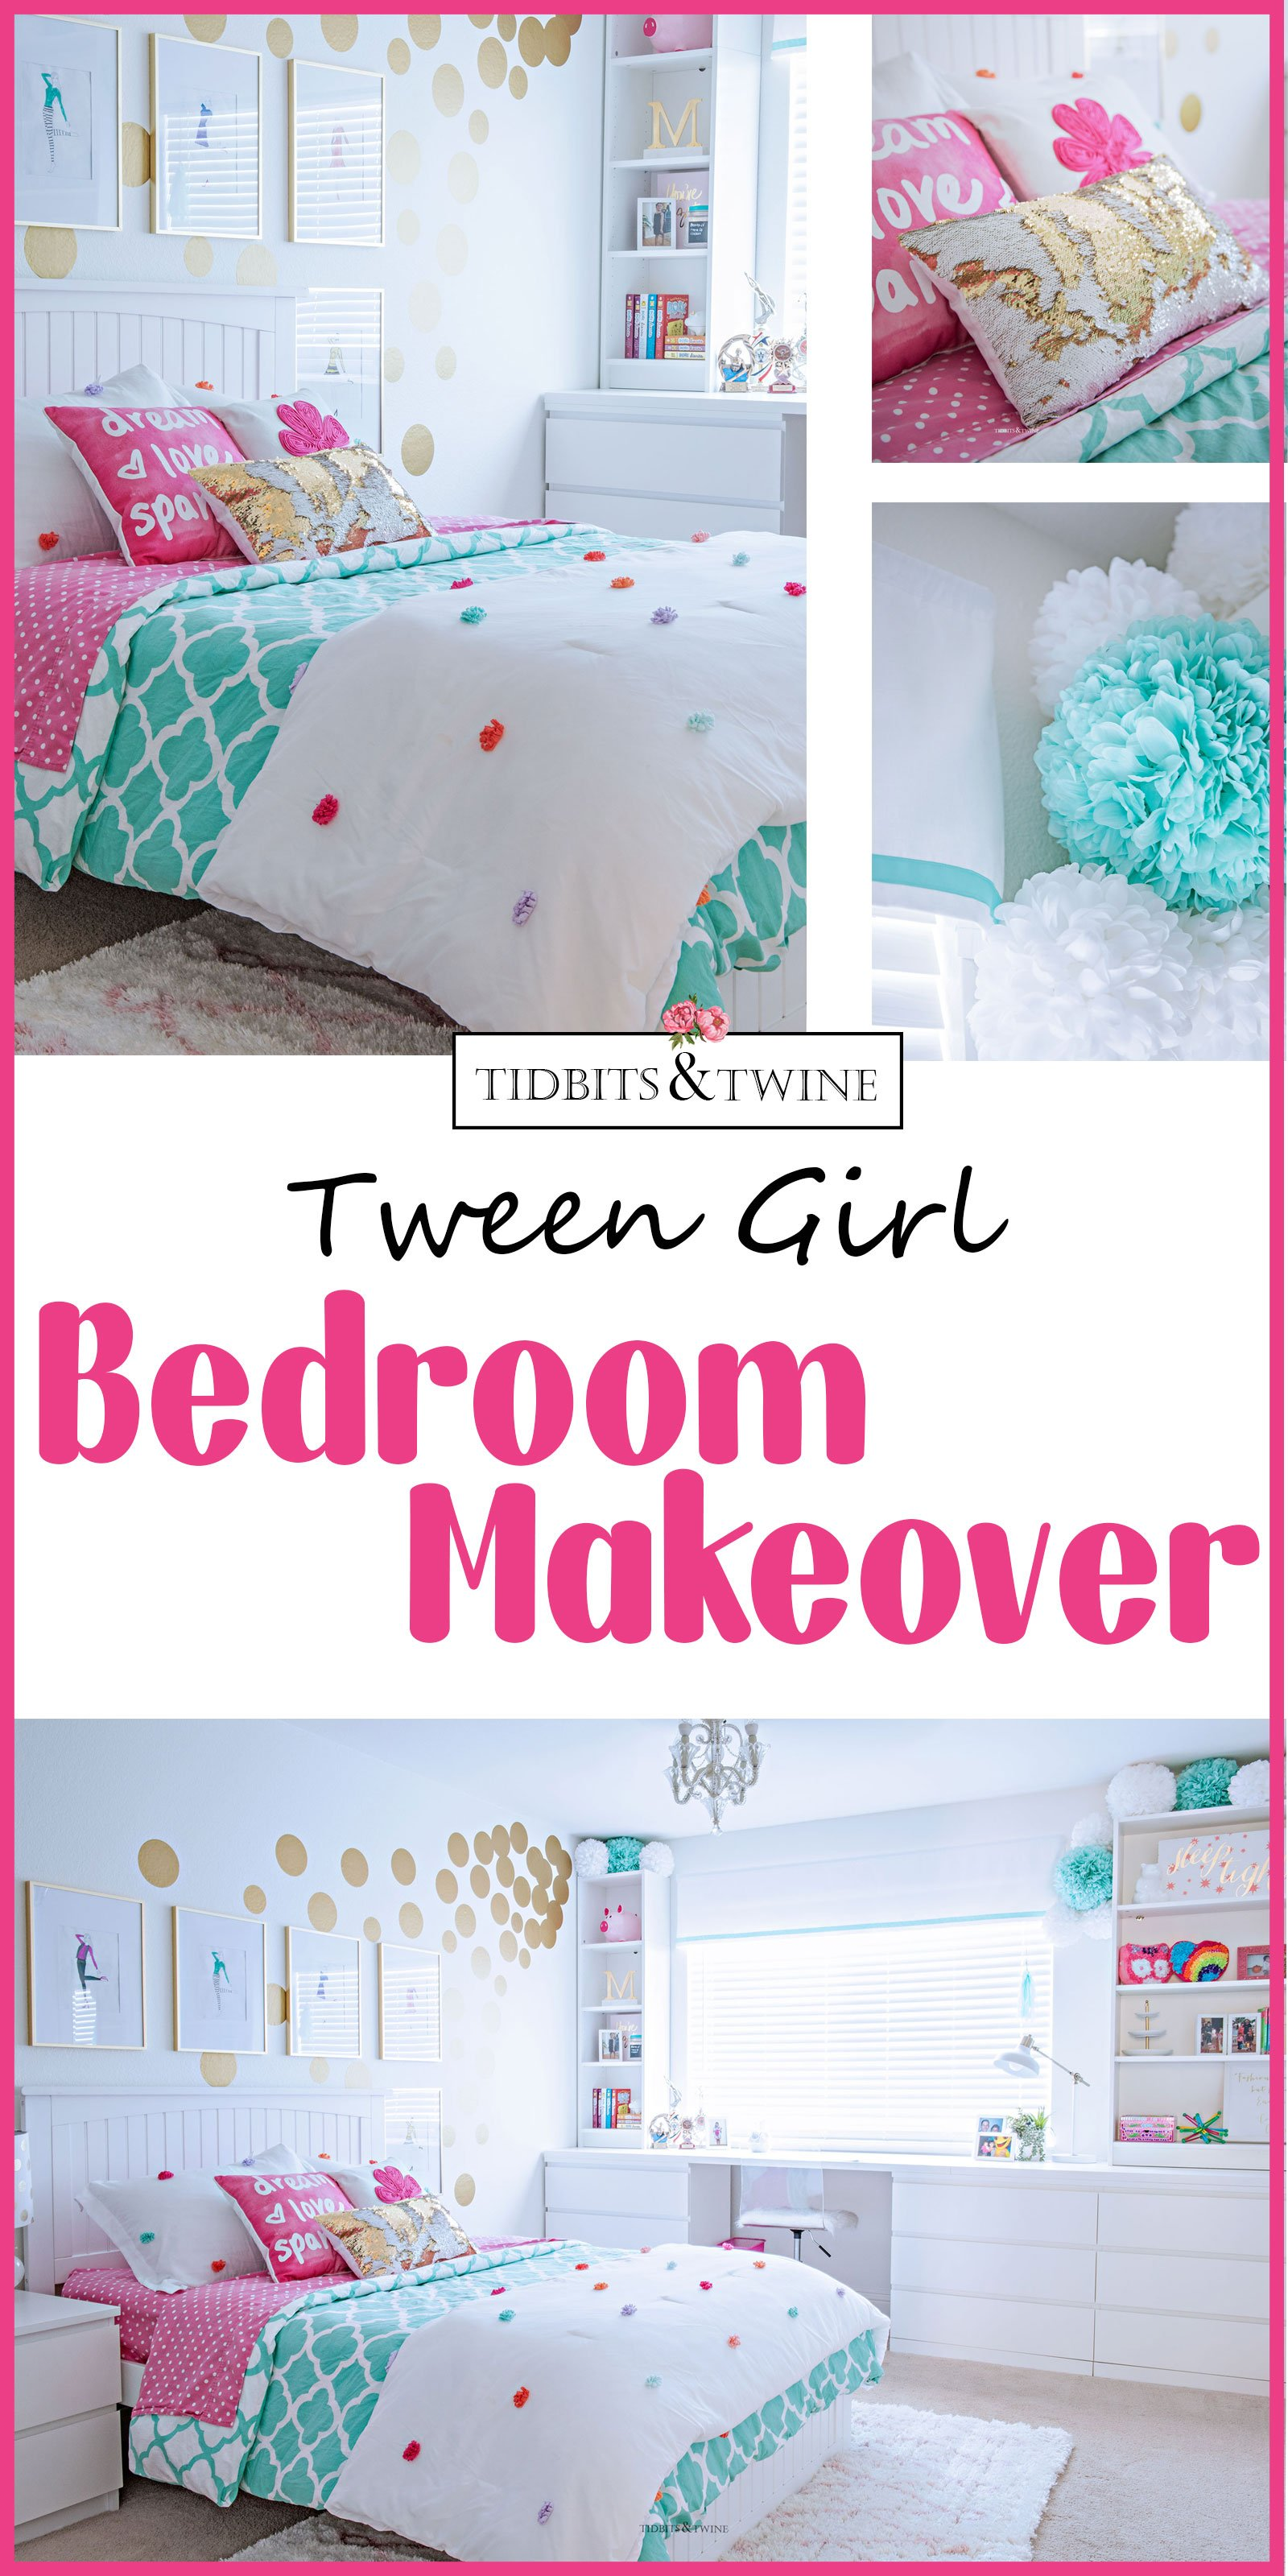 Tween Girl\'s Bedroom Makeover - REVEAL - TIDBITS&TWINE